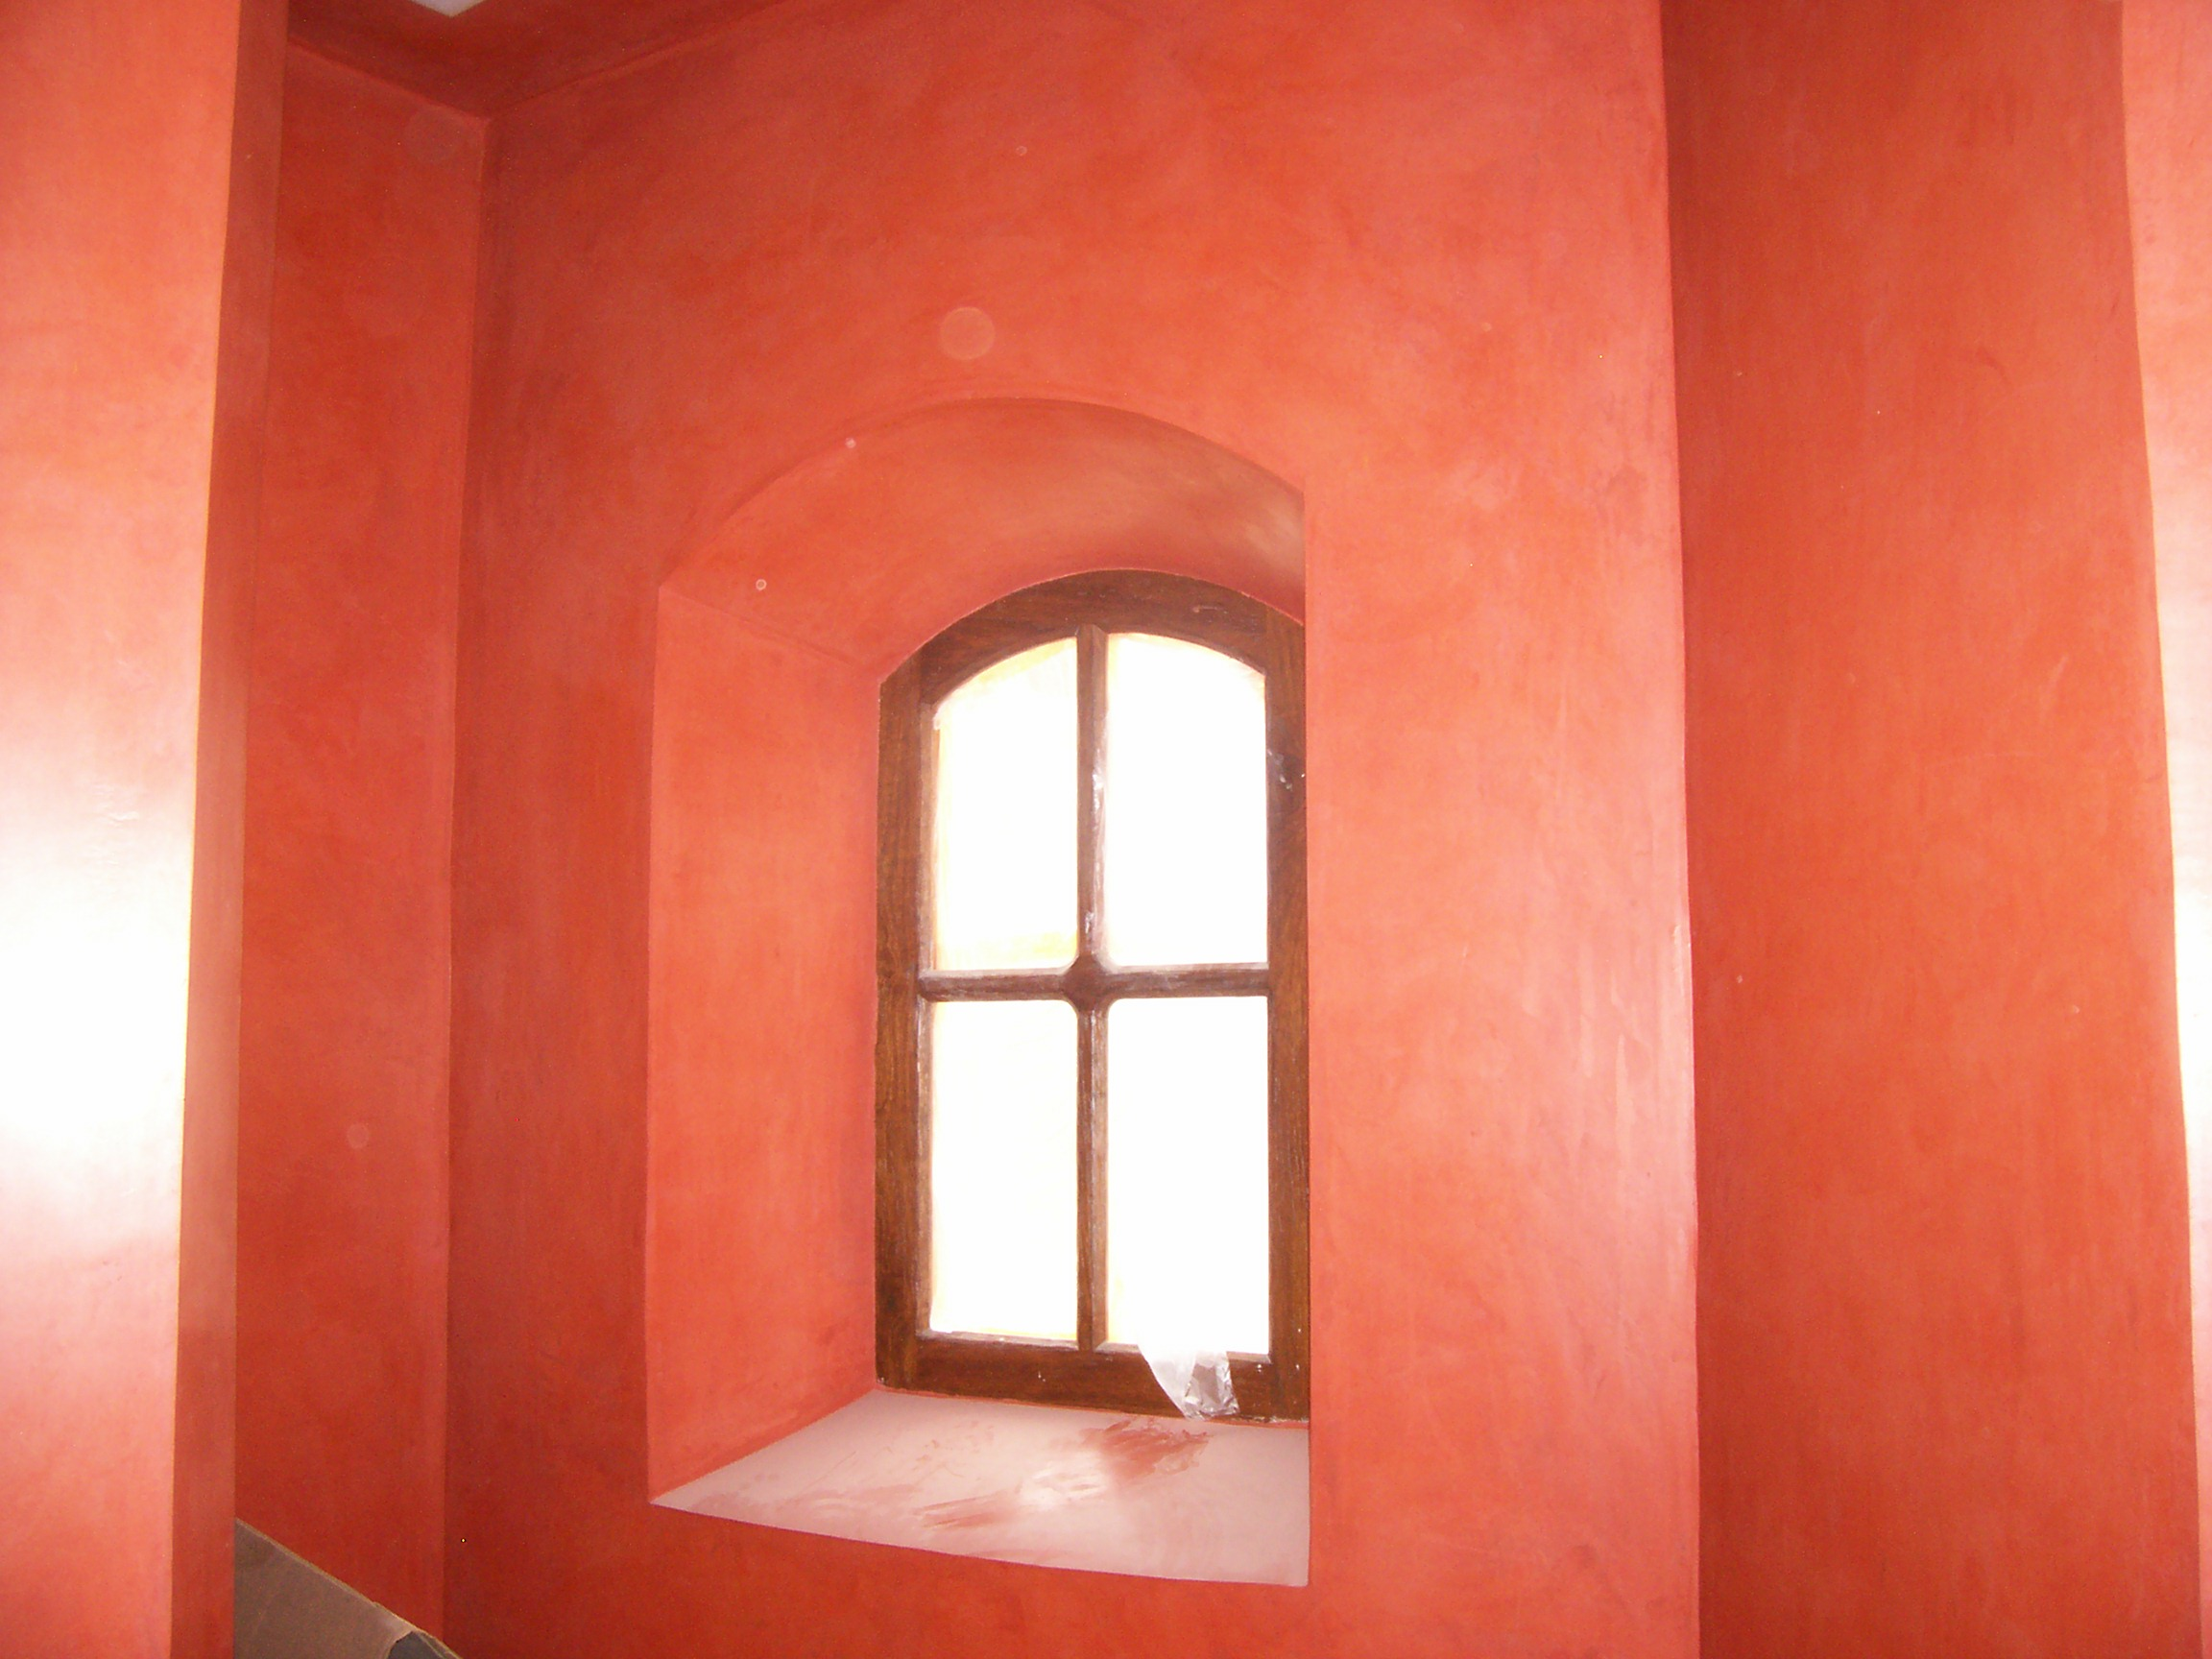 bright orange walls with a window